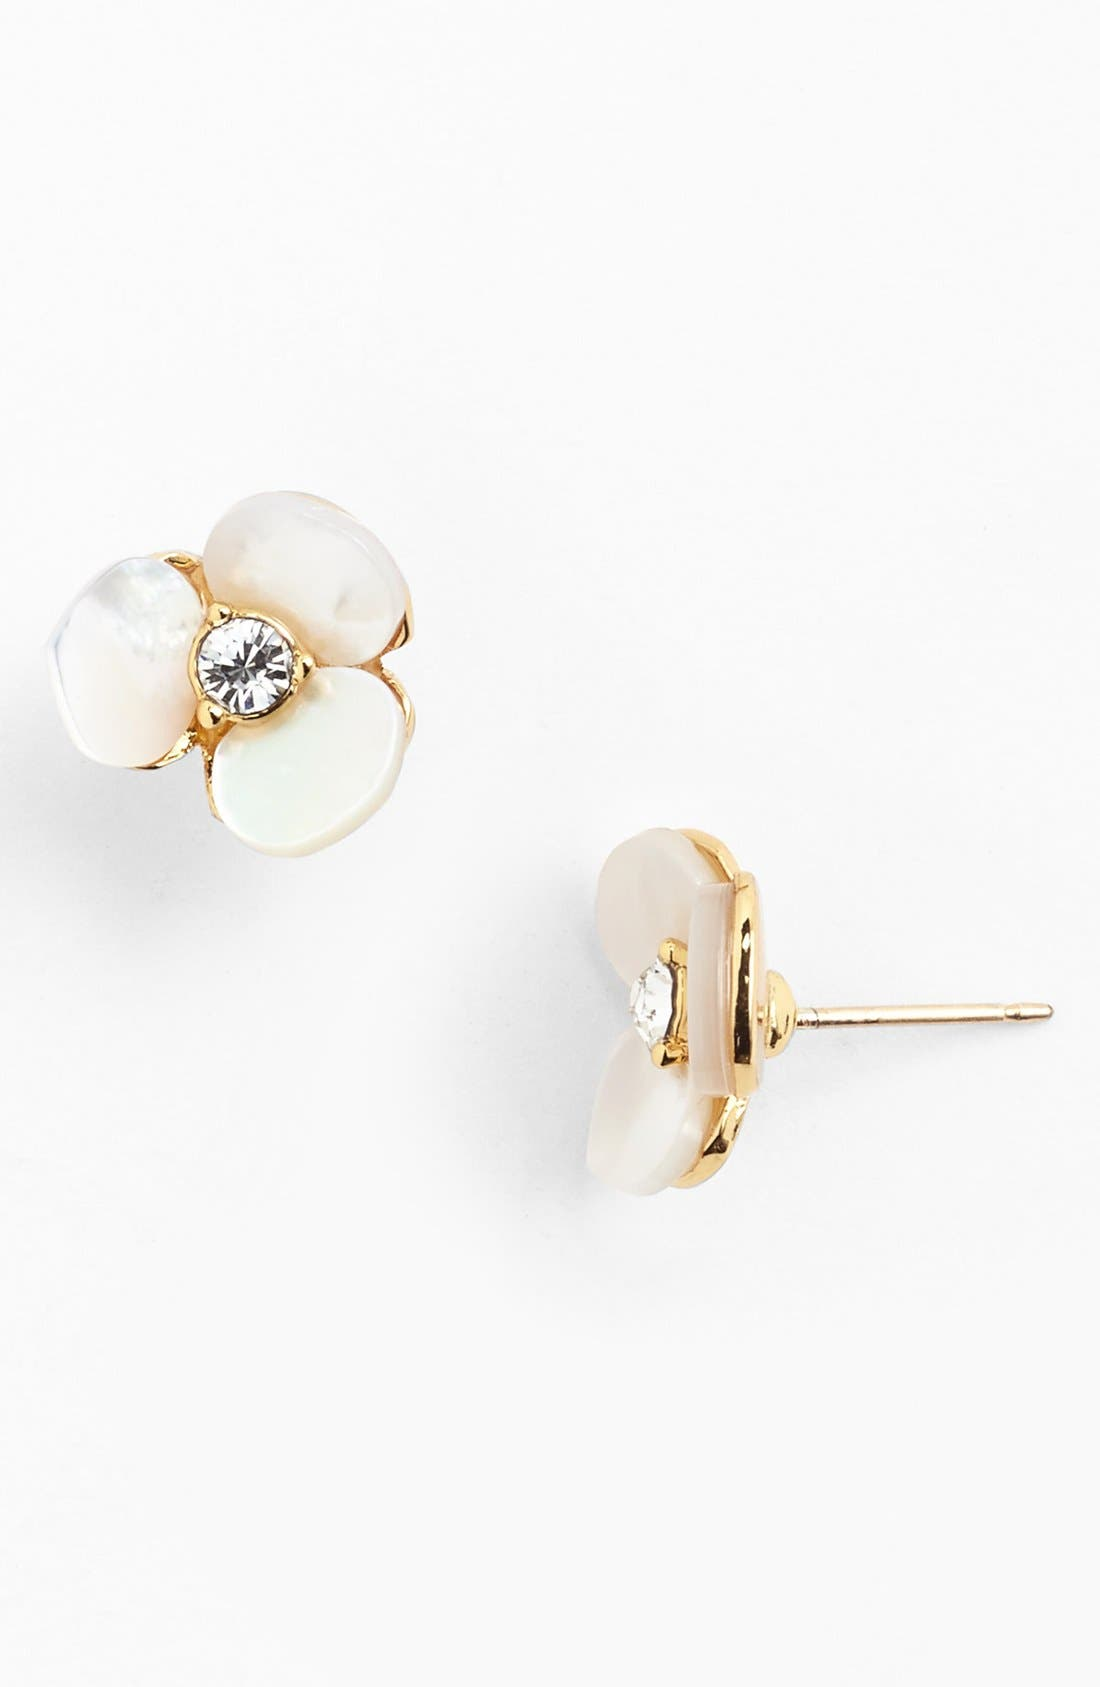 KATE SPADE NEW YORK 'disco pansy' stud earrings, Main, color, CREAM/ CLEAR/ GOLD